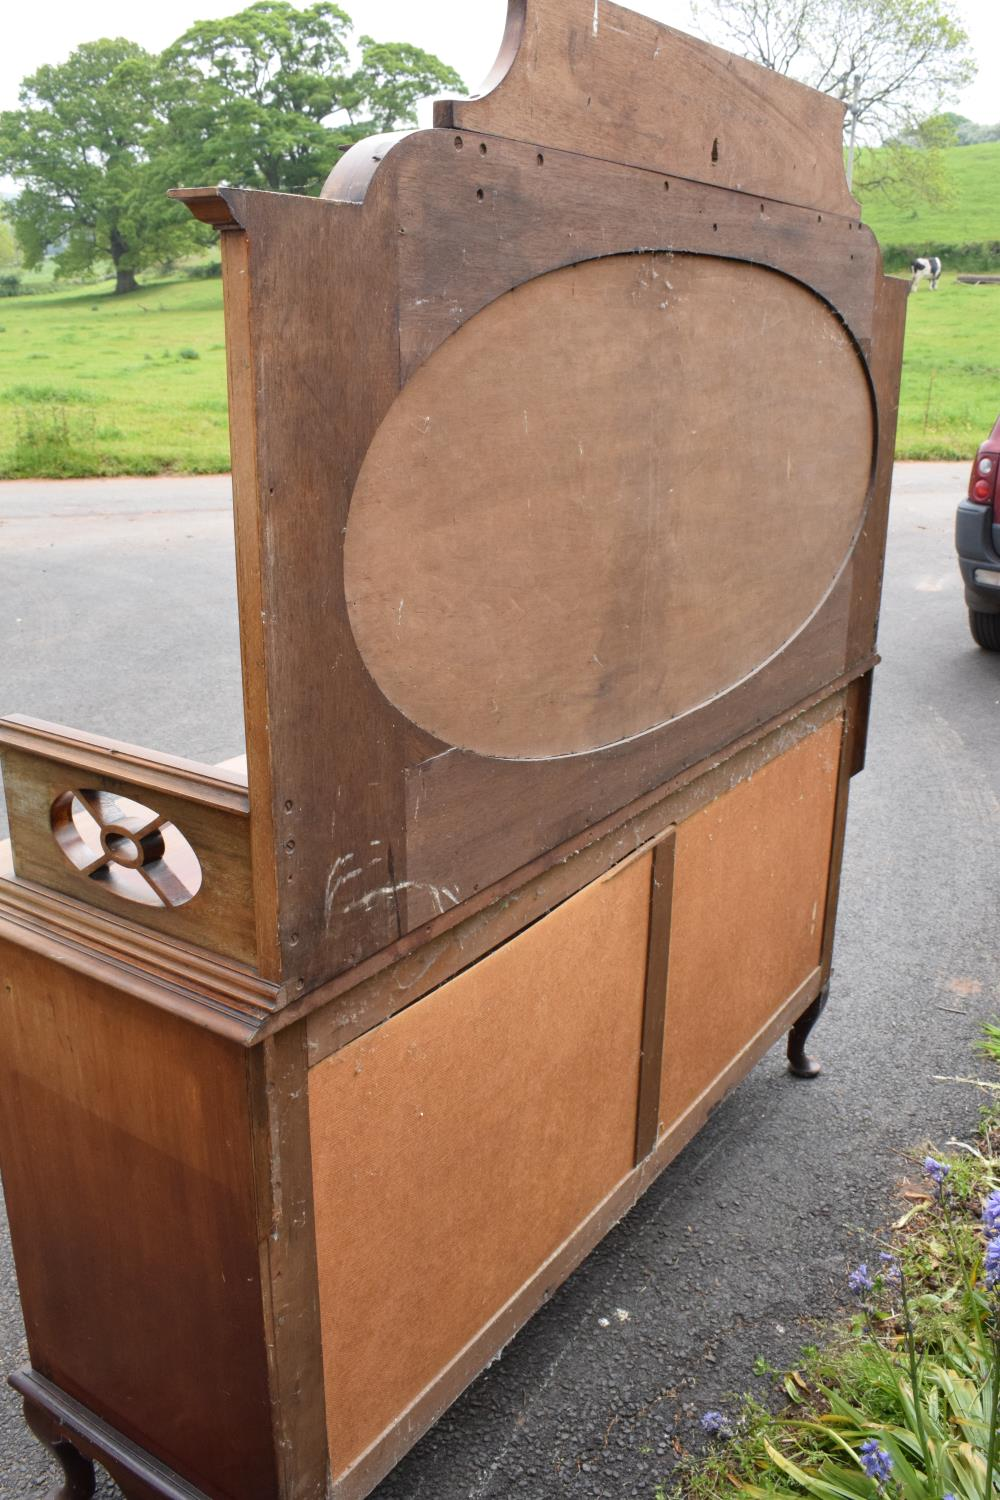 Edwardian mirror backed sideboard/ drinks cabinet. 168 x 56 x 183cm. The top section lifts off and - Image 11 of 11